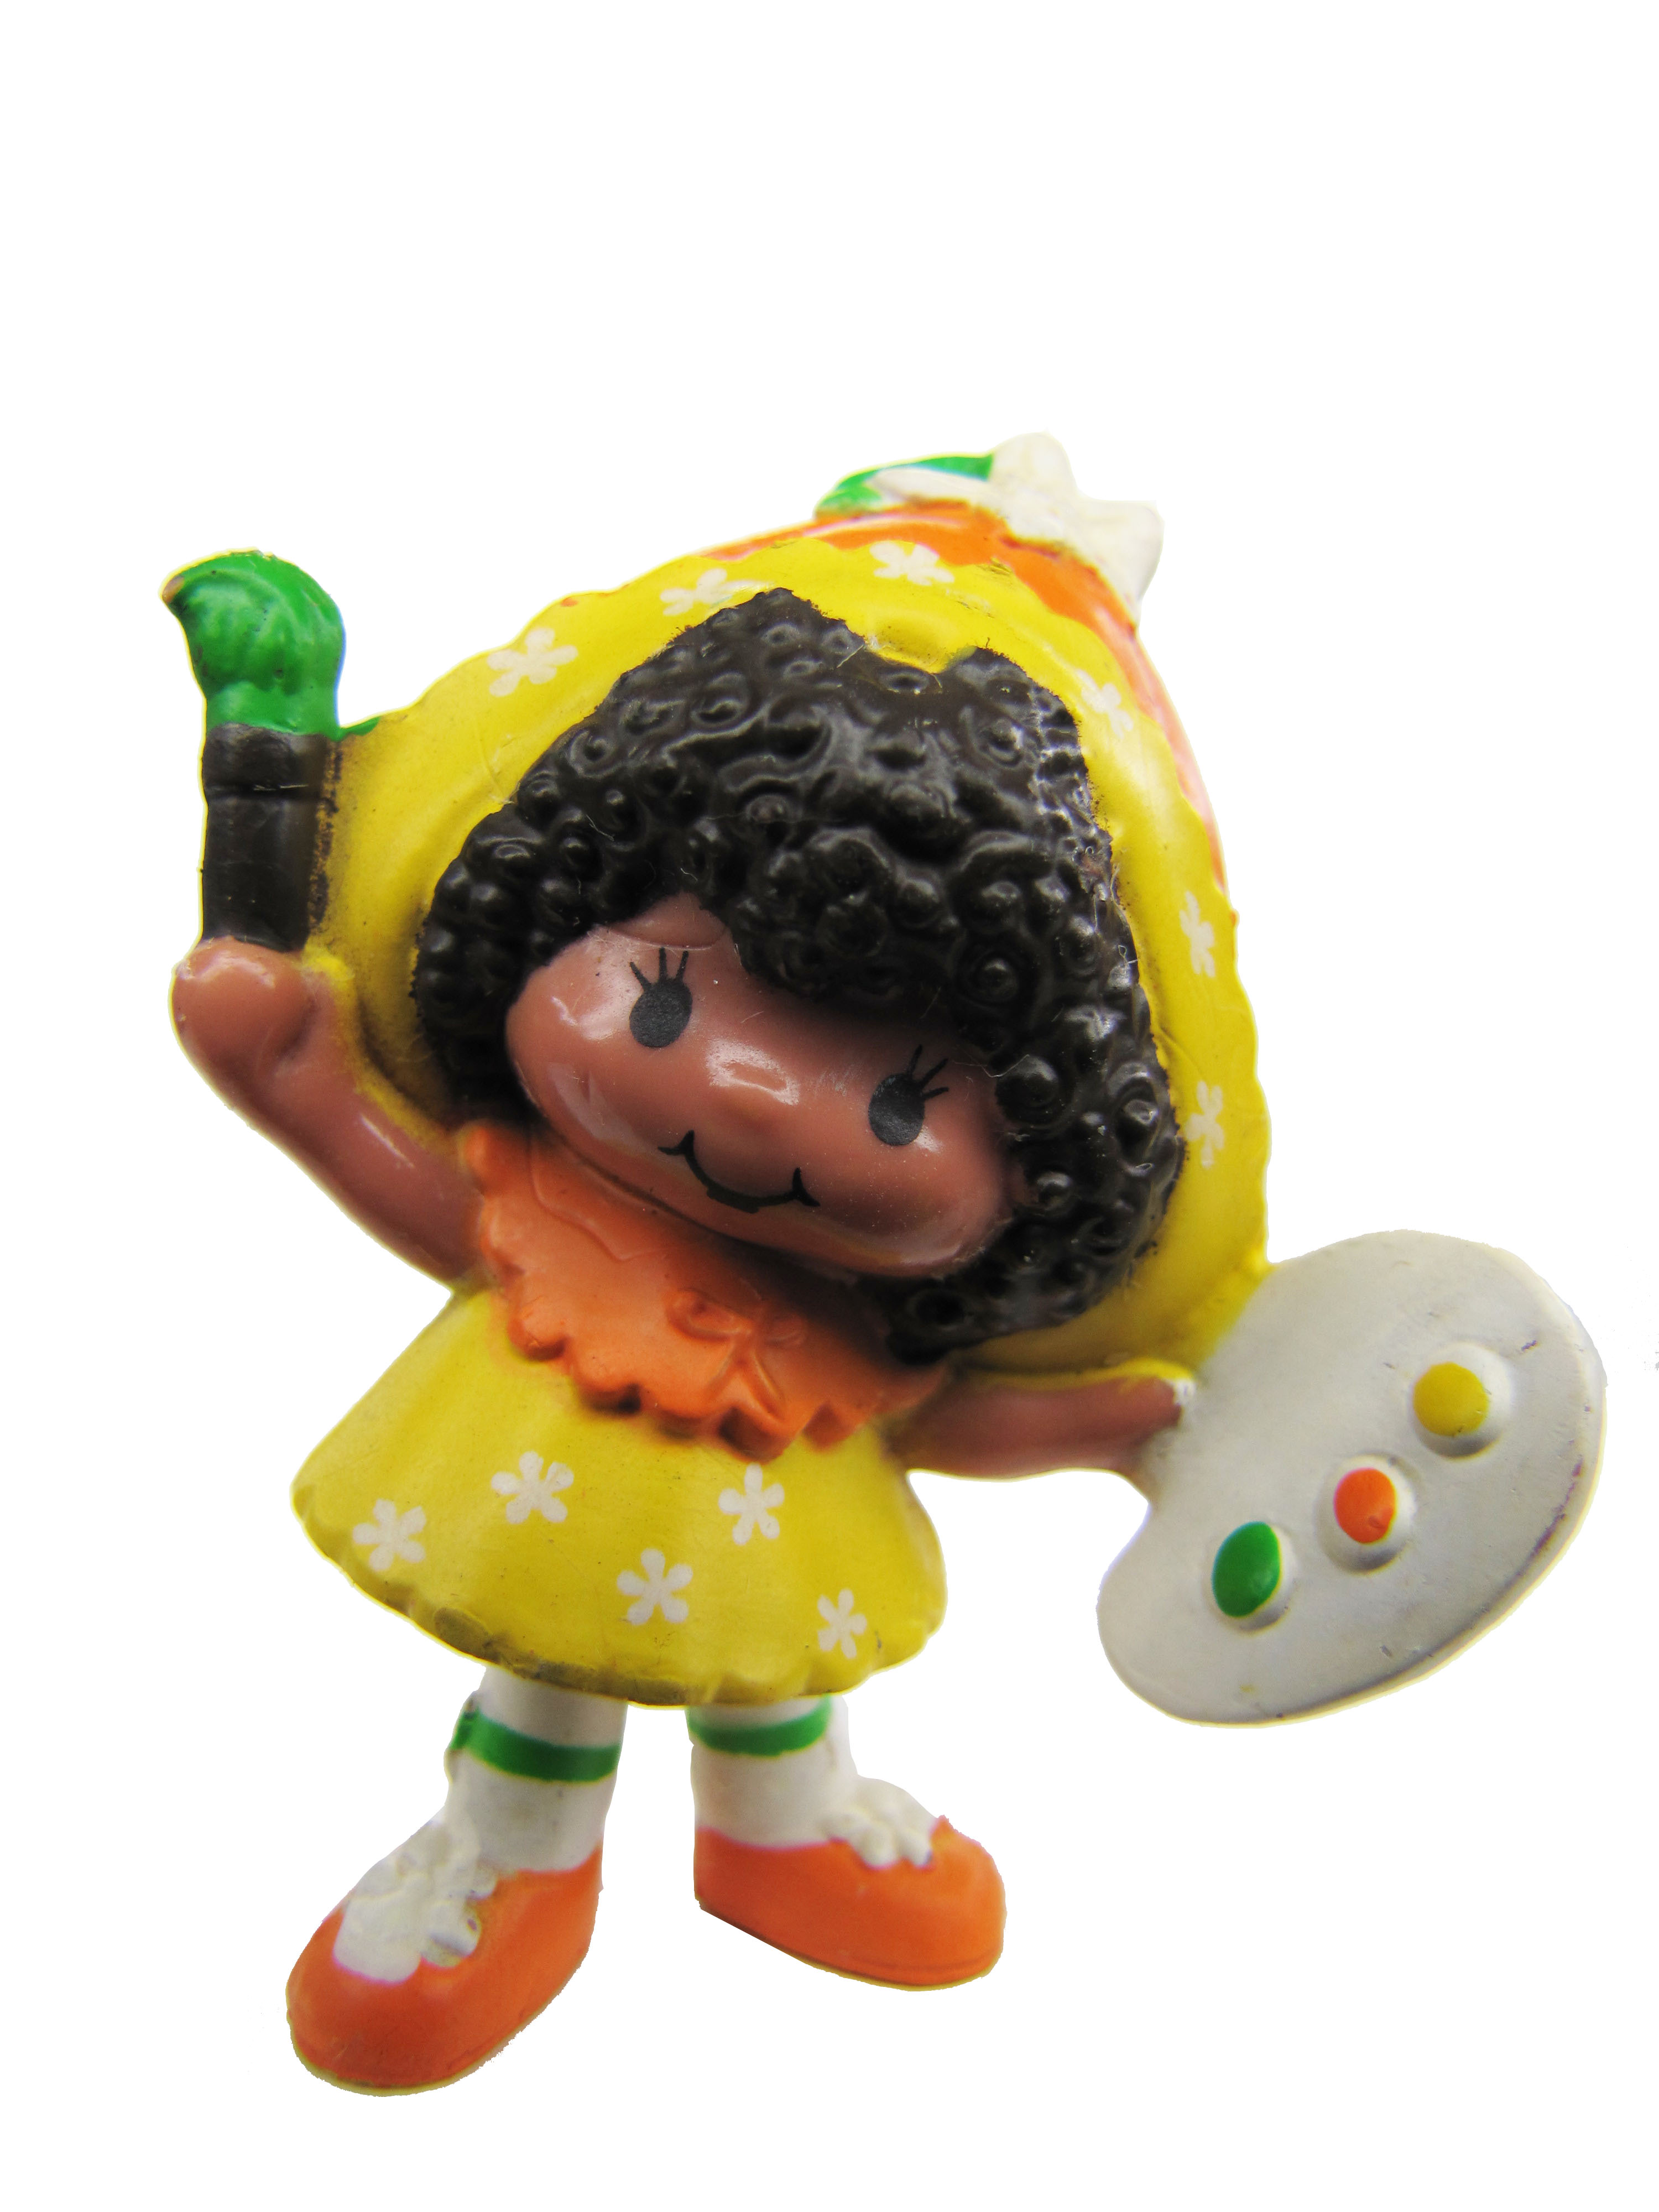 Vintage Strawberry Shortcake Orange Blossom Painter